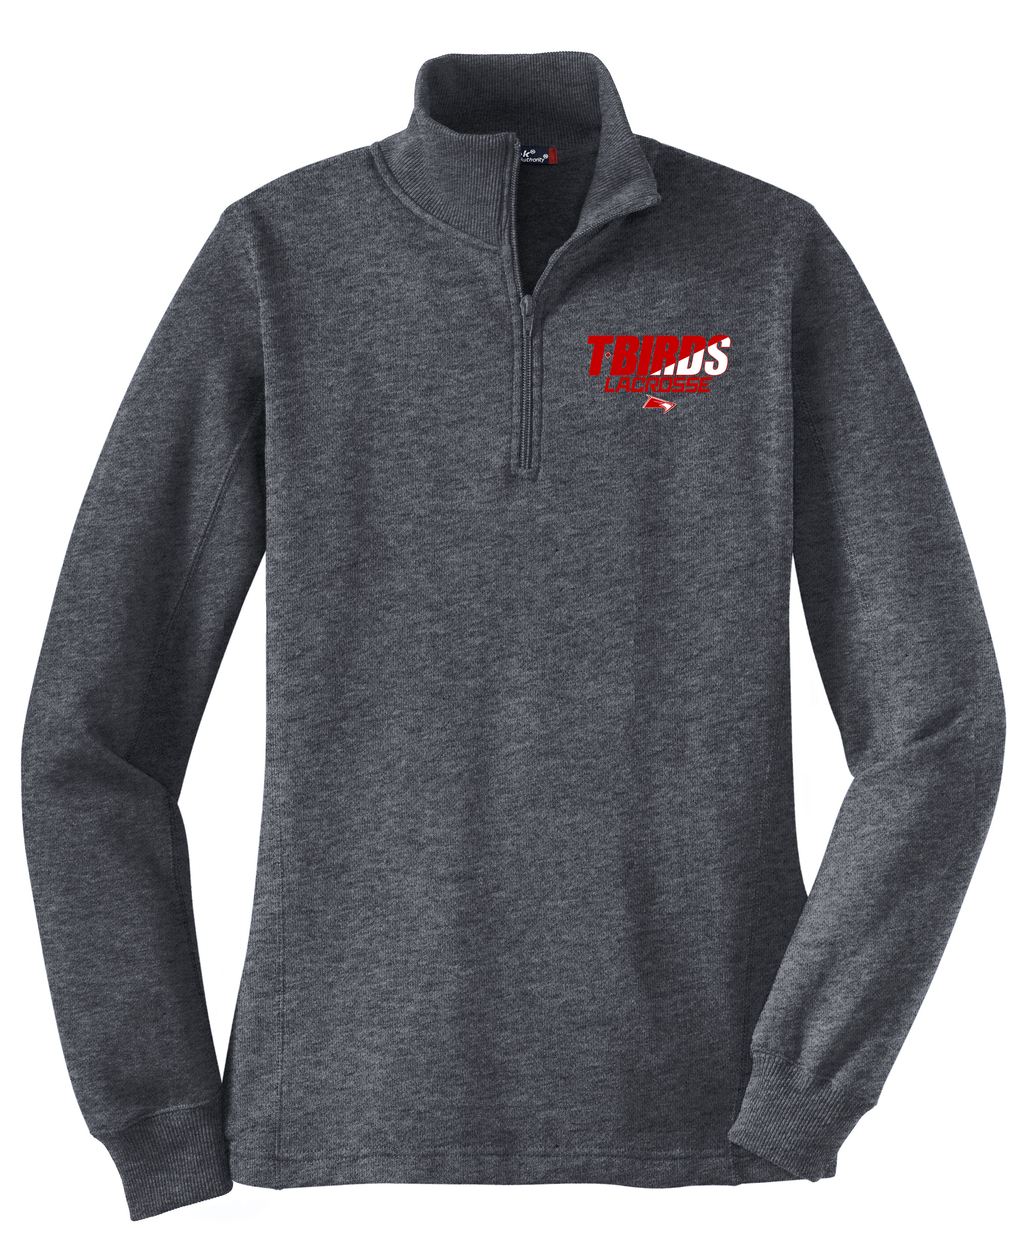 Connetquot Lacrosse Women's 1/4 Zip Fleece